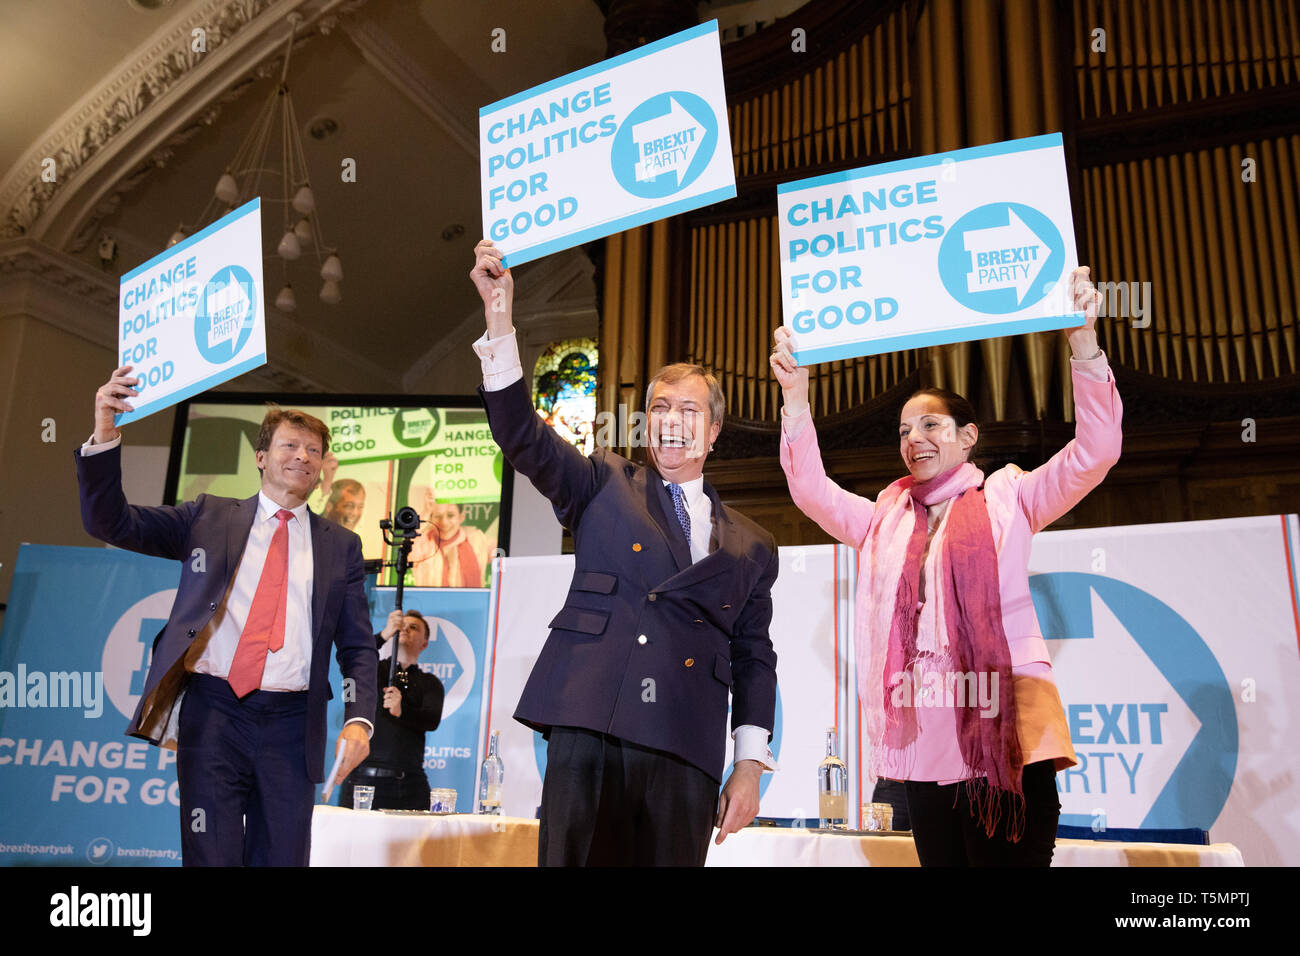 Brexit Party Rally held at Albert Hall Conference Centre, Nottingham. Nigel Farage joined by Annunziata Rees-Mogg, Richard Tice. Stock Photo